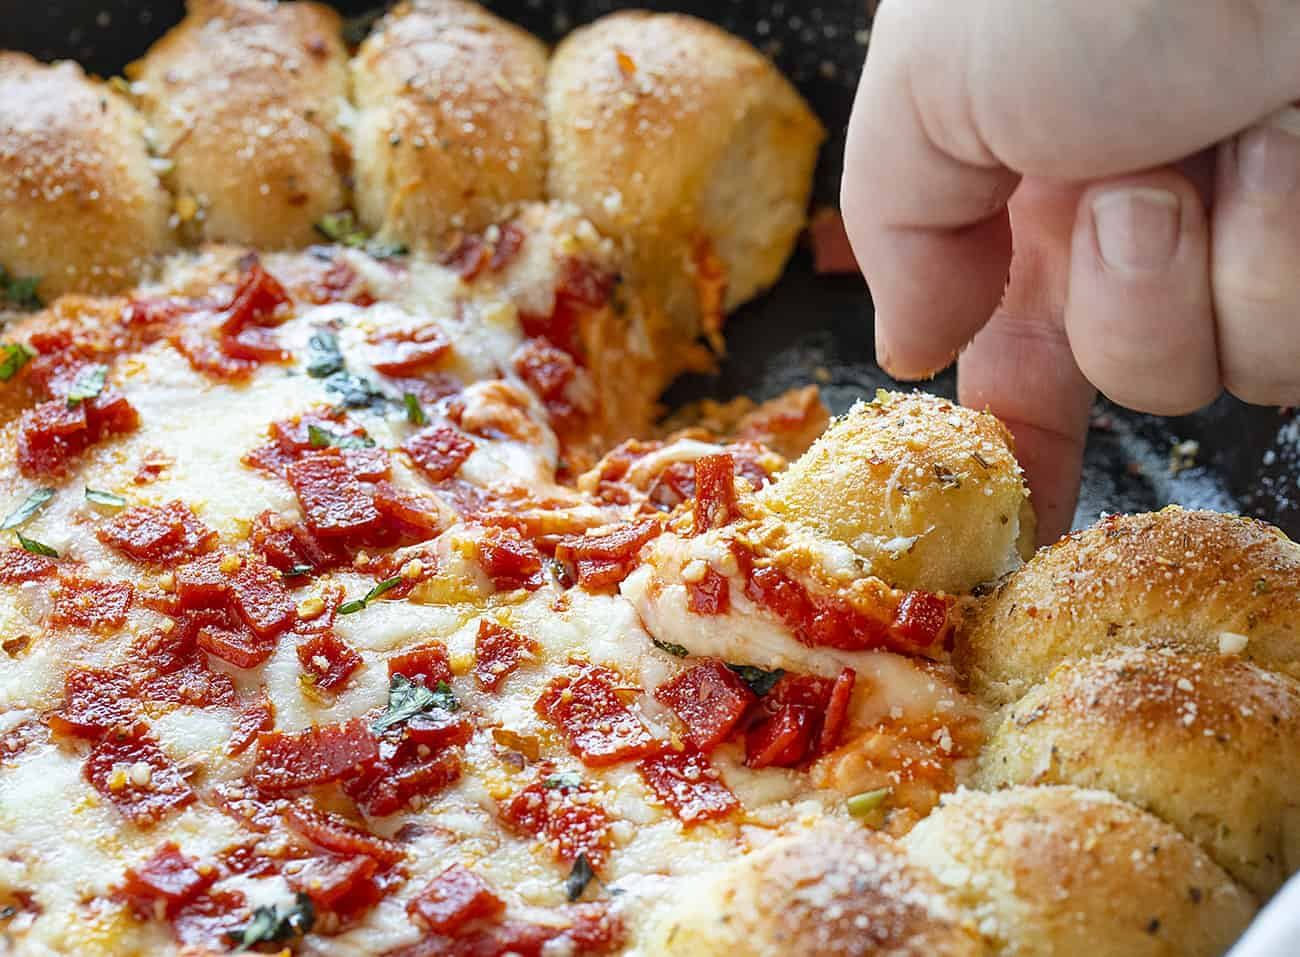 Piece of Skillet Pizza Dip